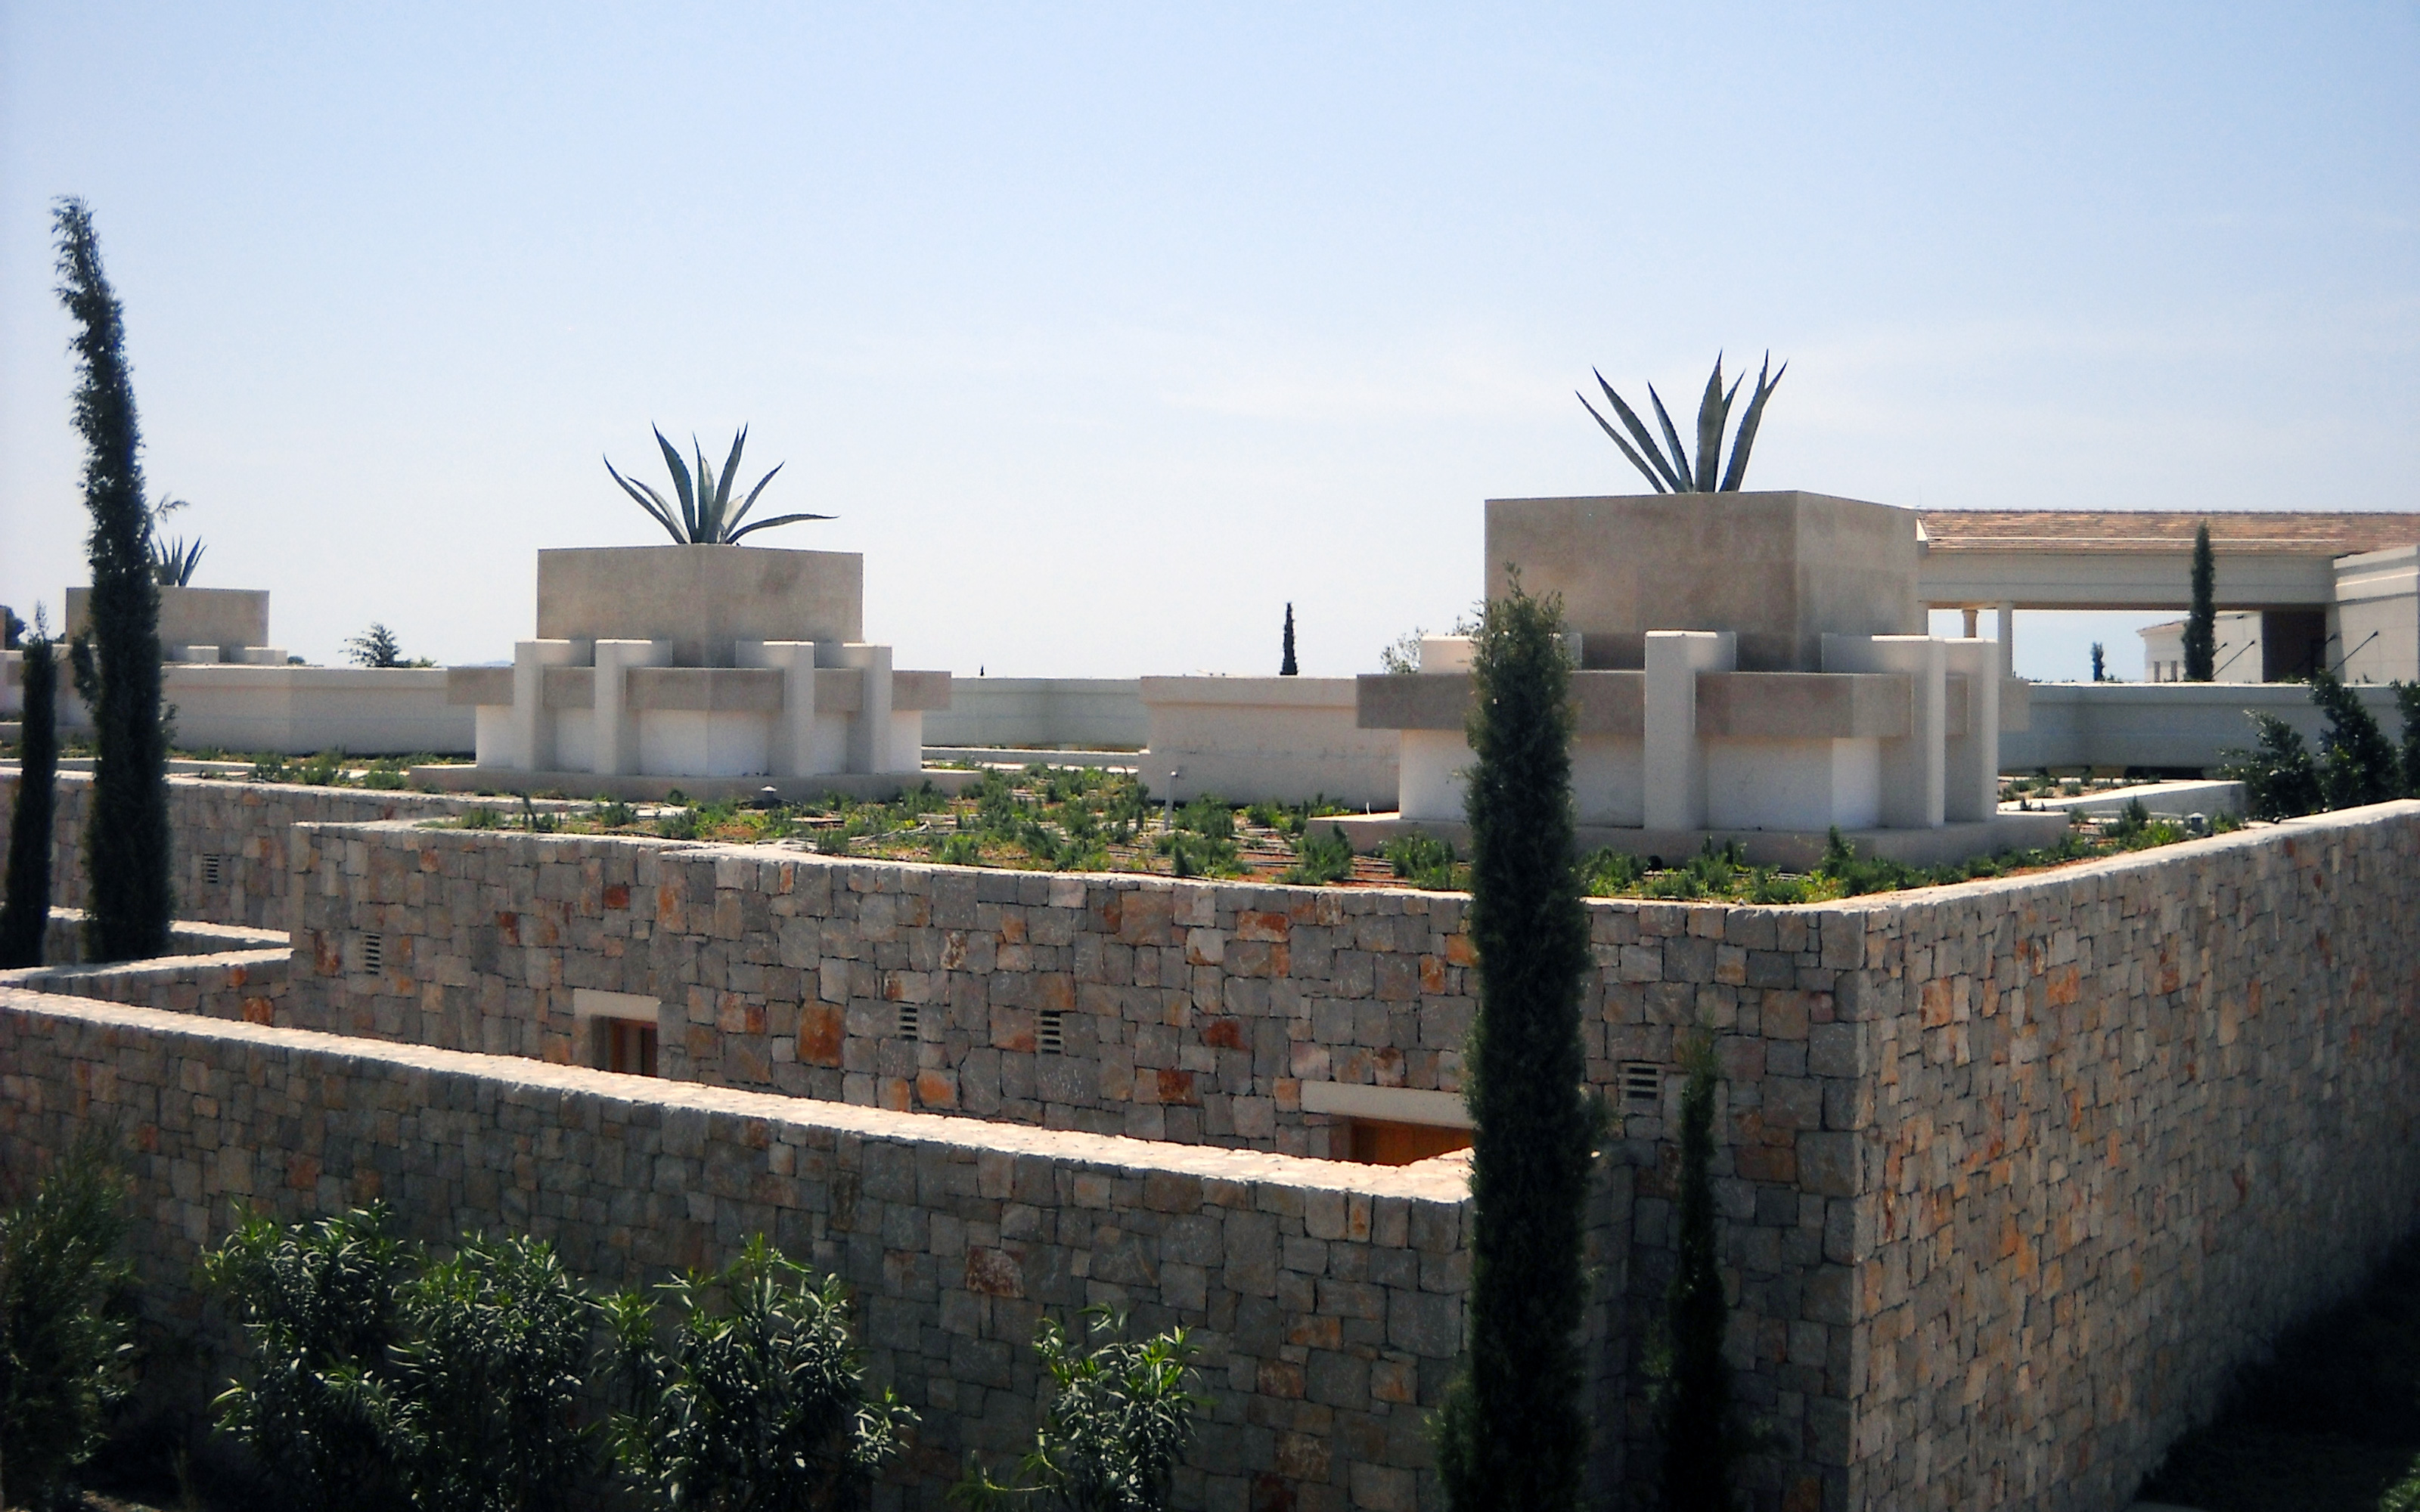 Stone houses with green roofs and Agaves